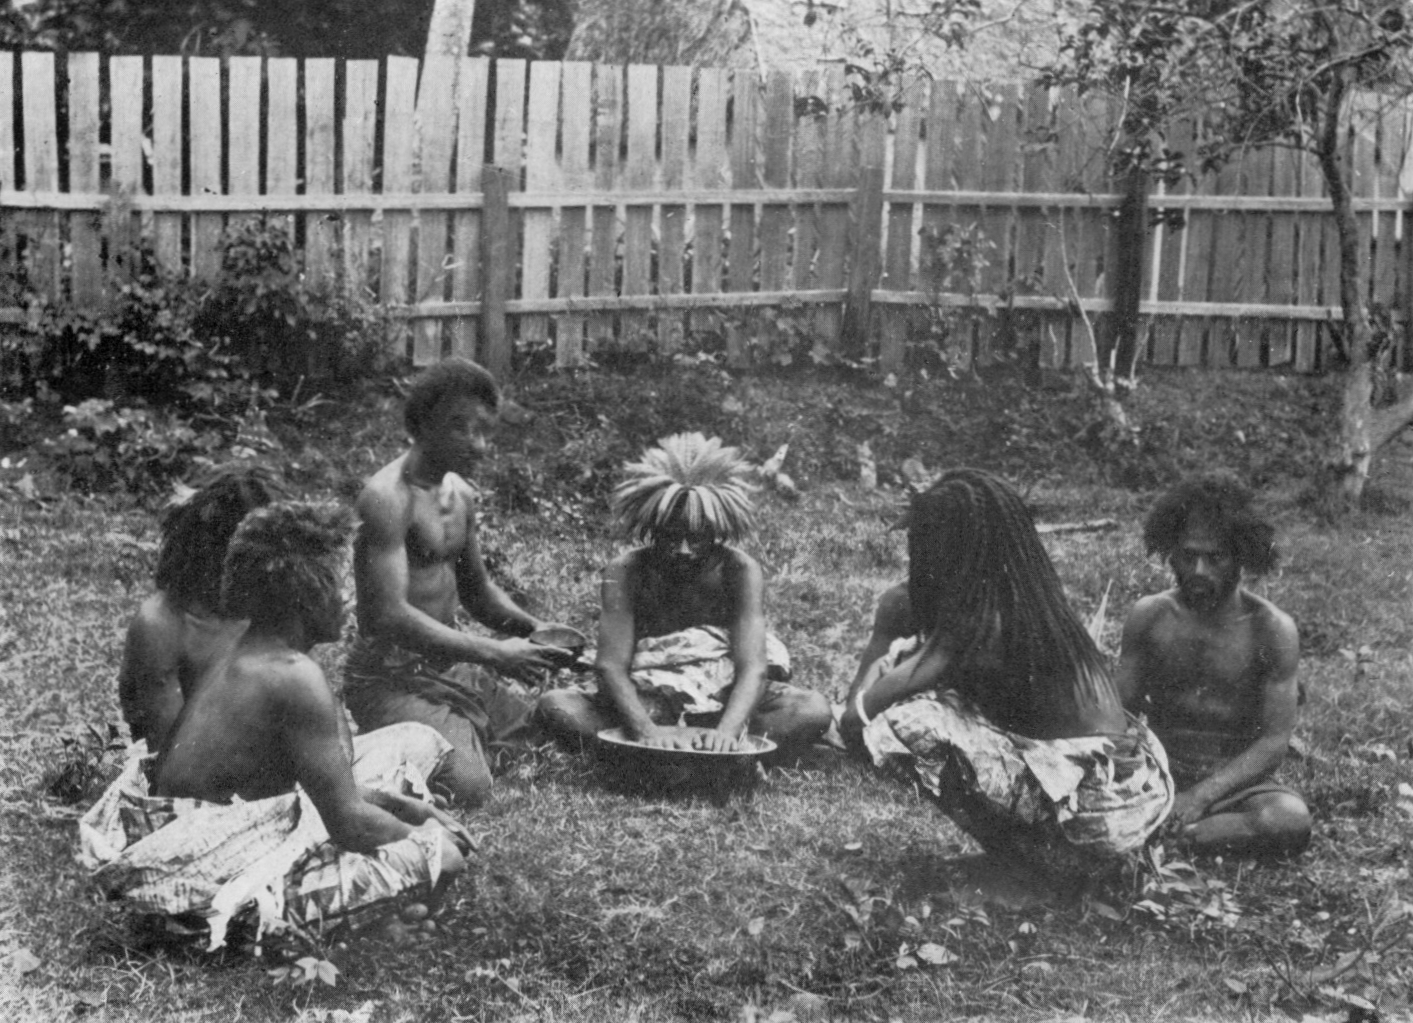 The Project Gutenberg eBook of The Fijians a Study of the Decay of ...